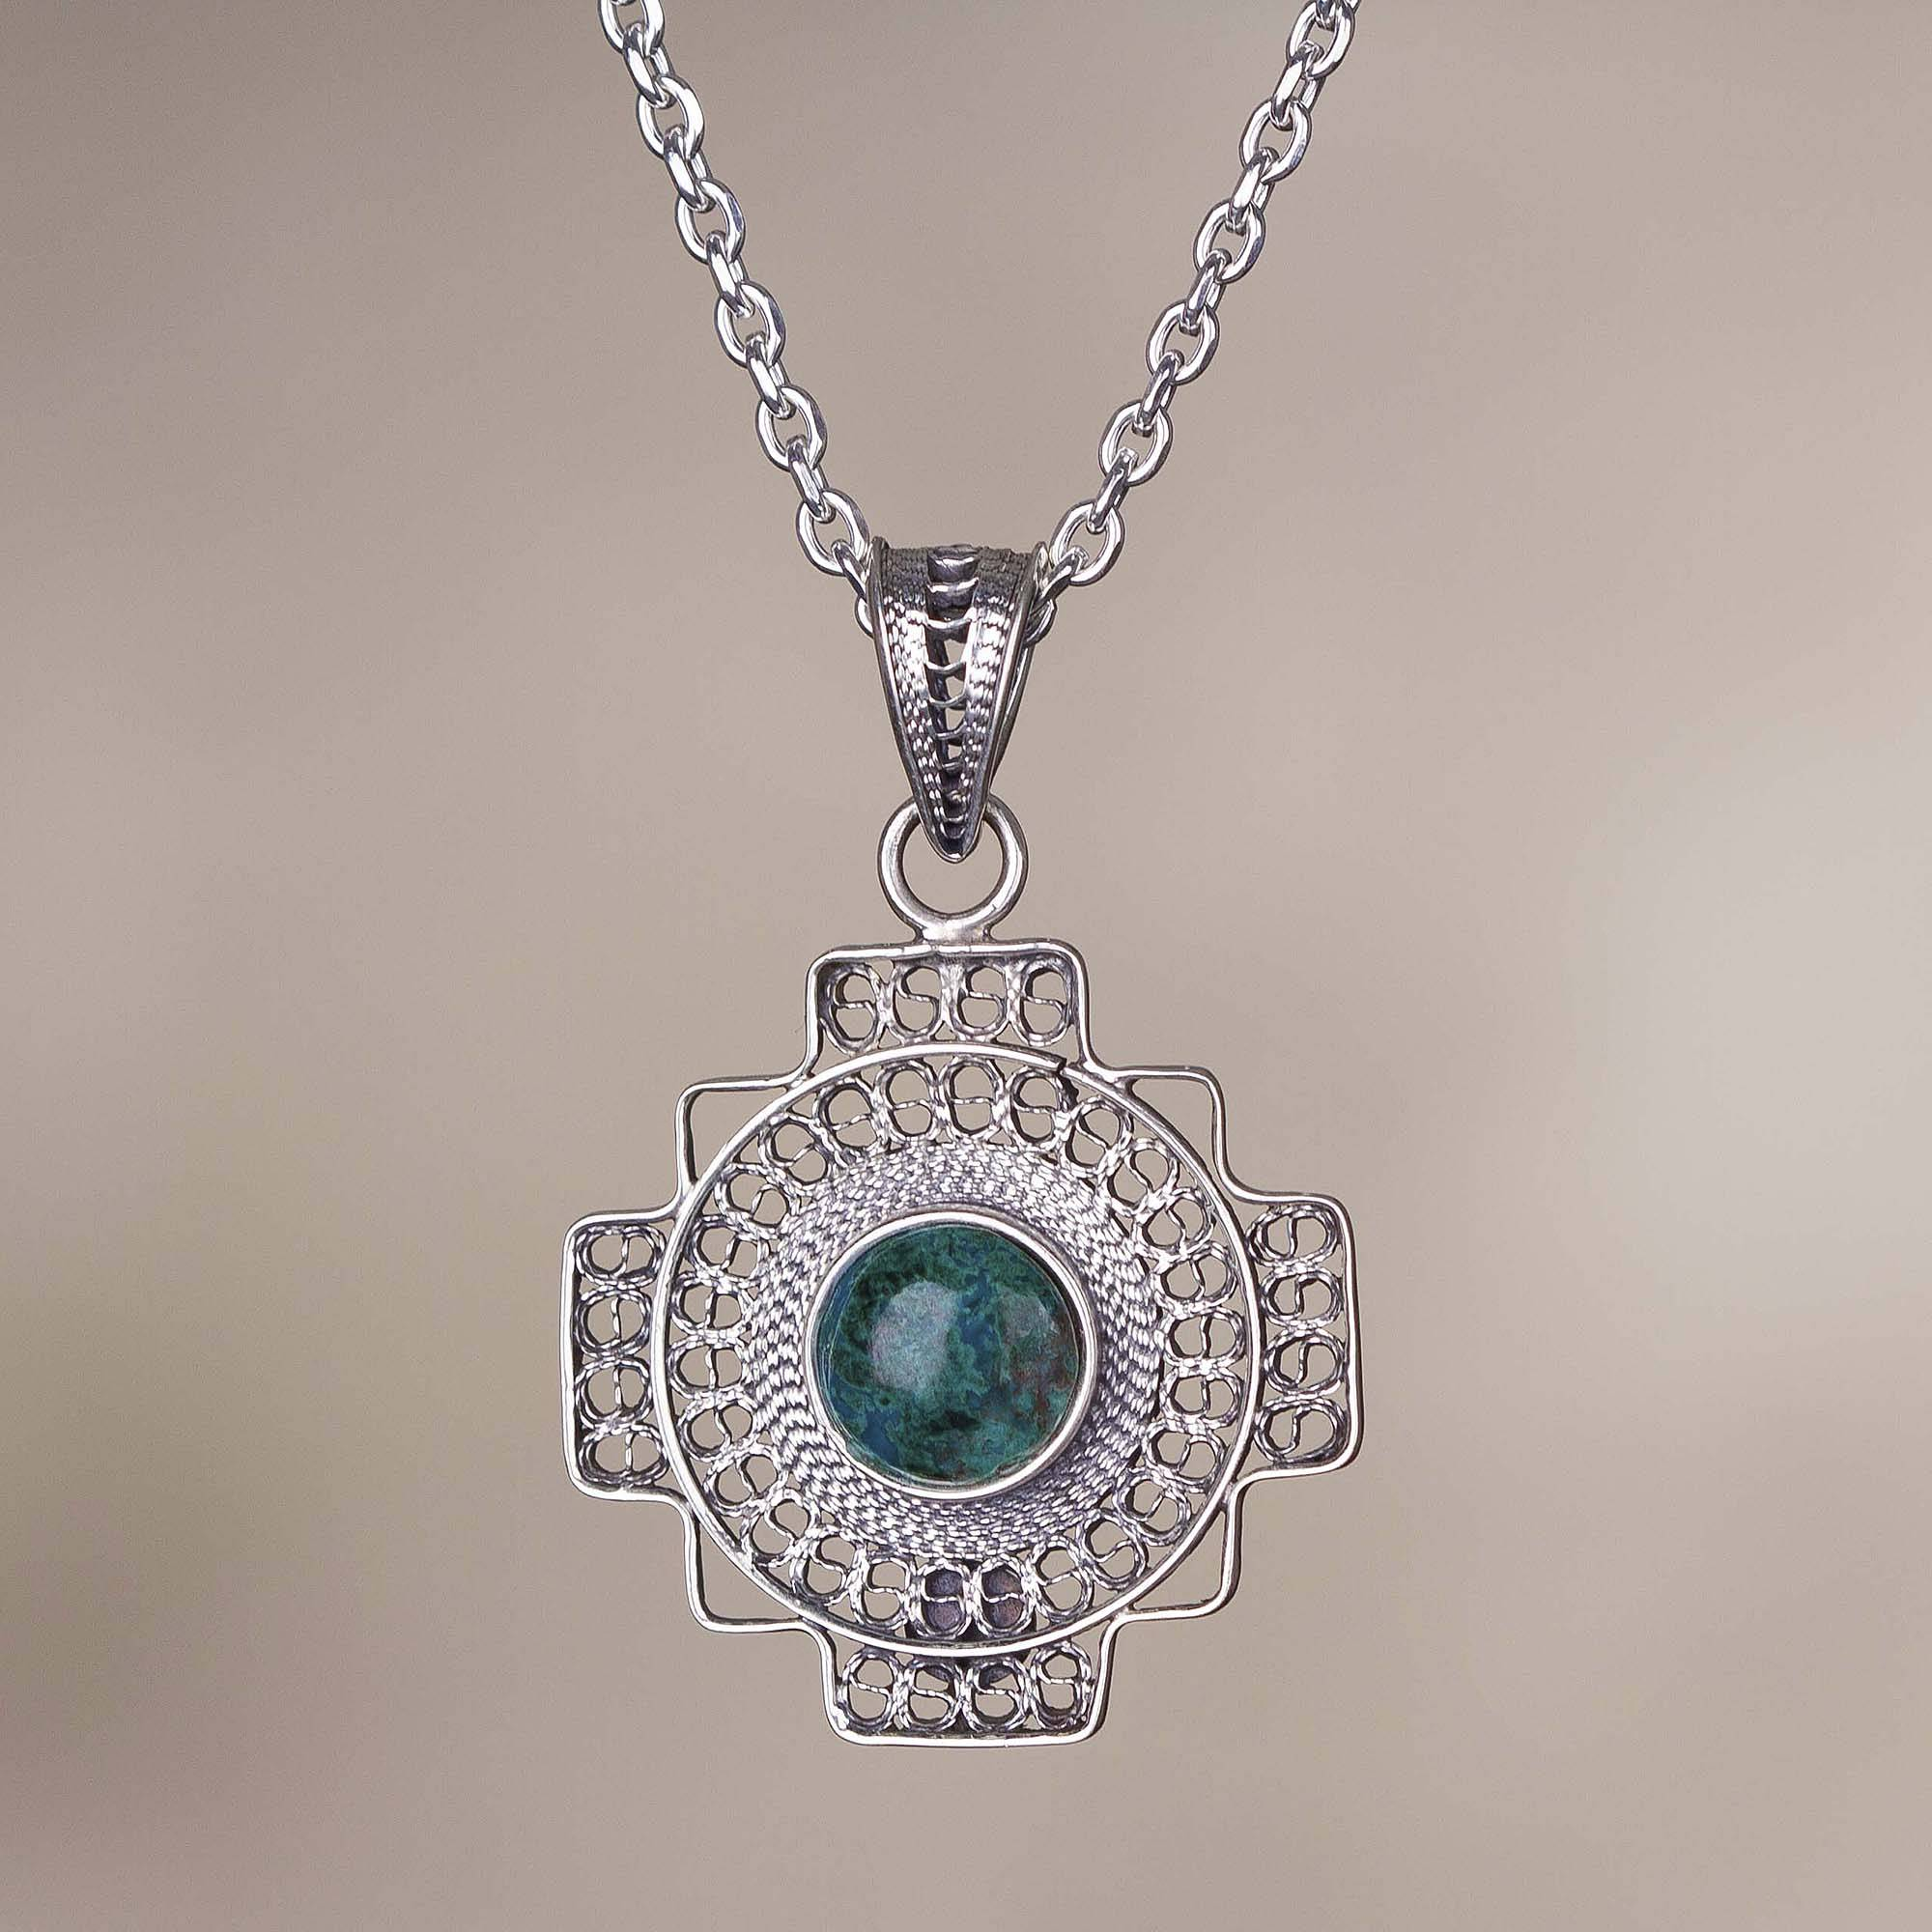 Green Valley Chakana Chrysocolla Chakana Cross Filigree Necklace from Peru Art and tradition in silver